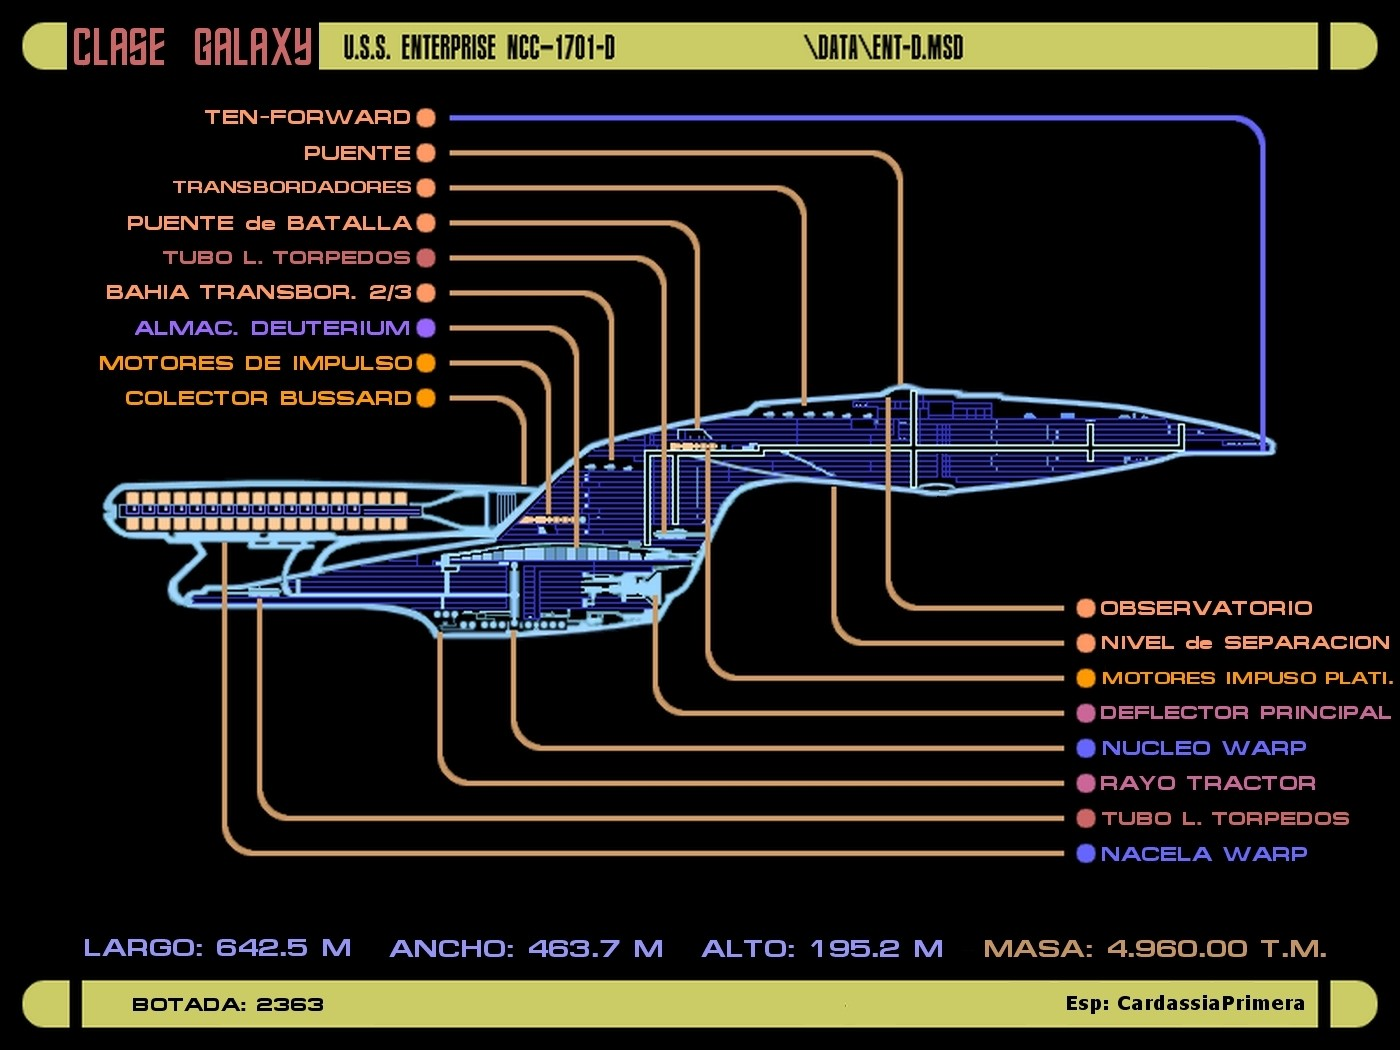 intrepid class uss voyager ncc 74656